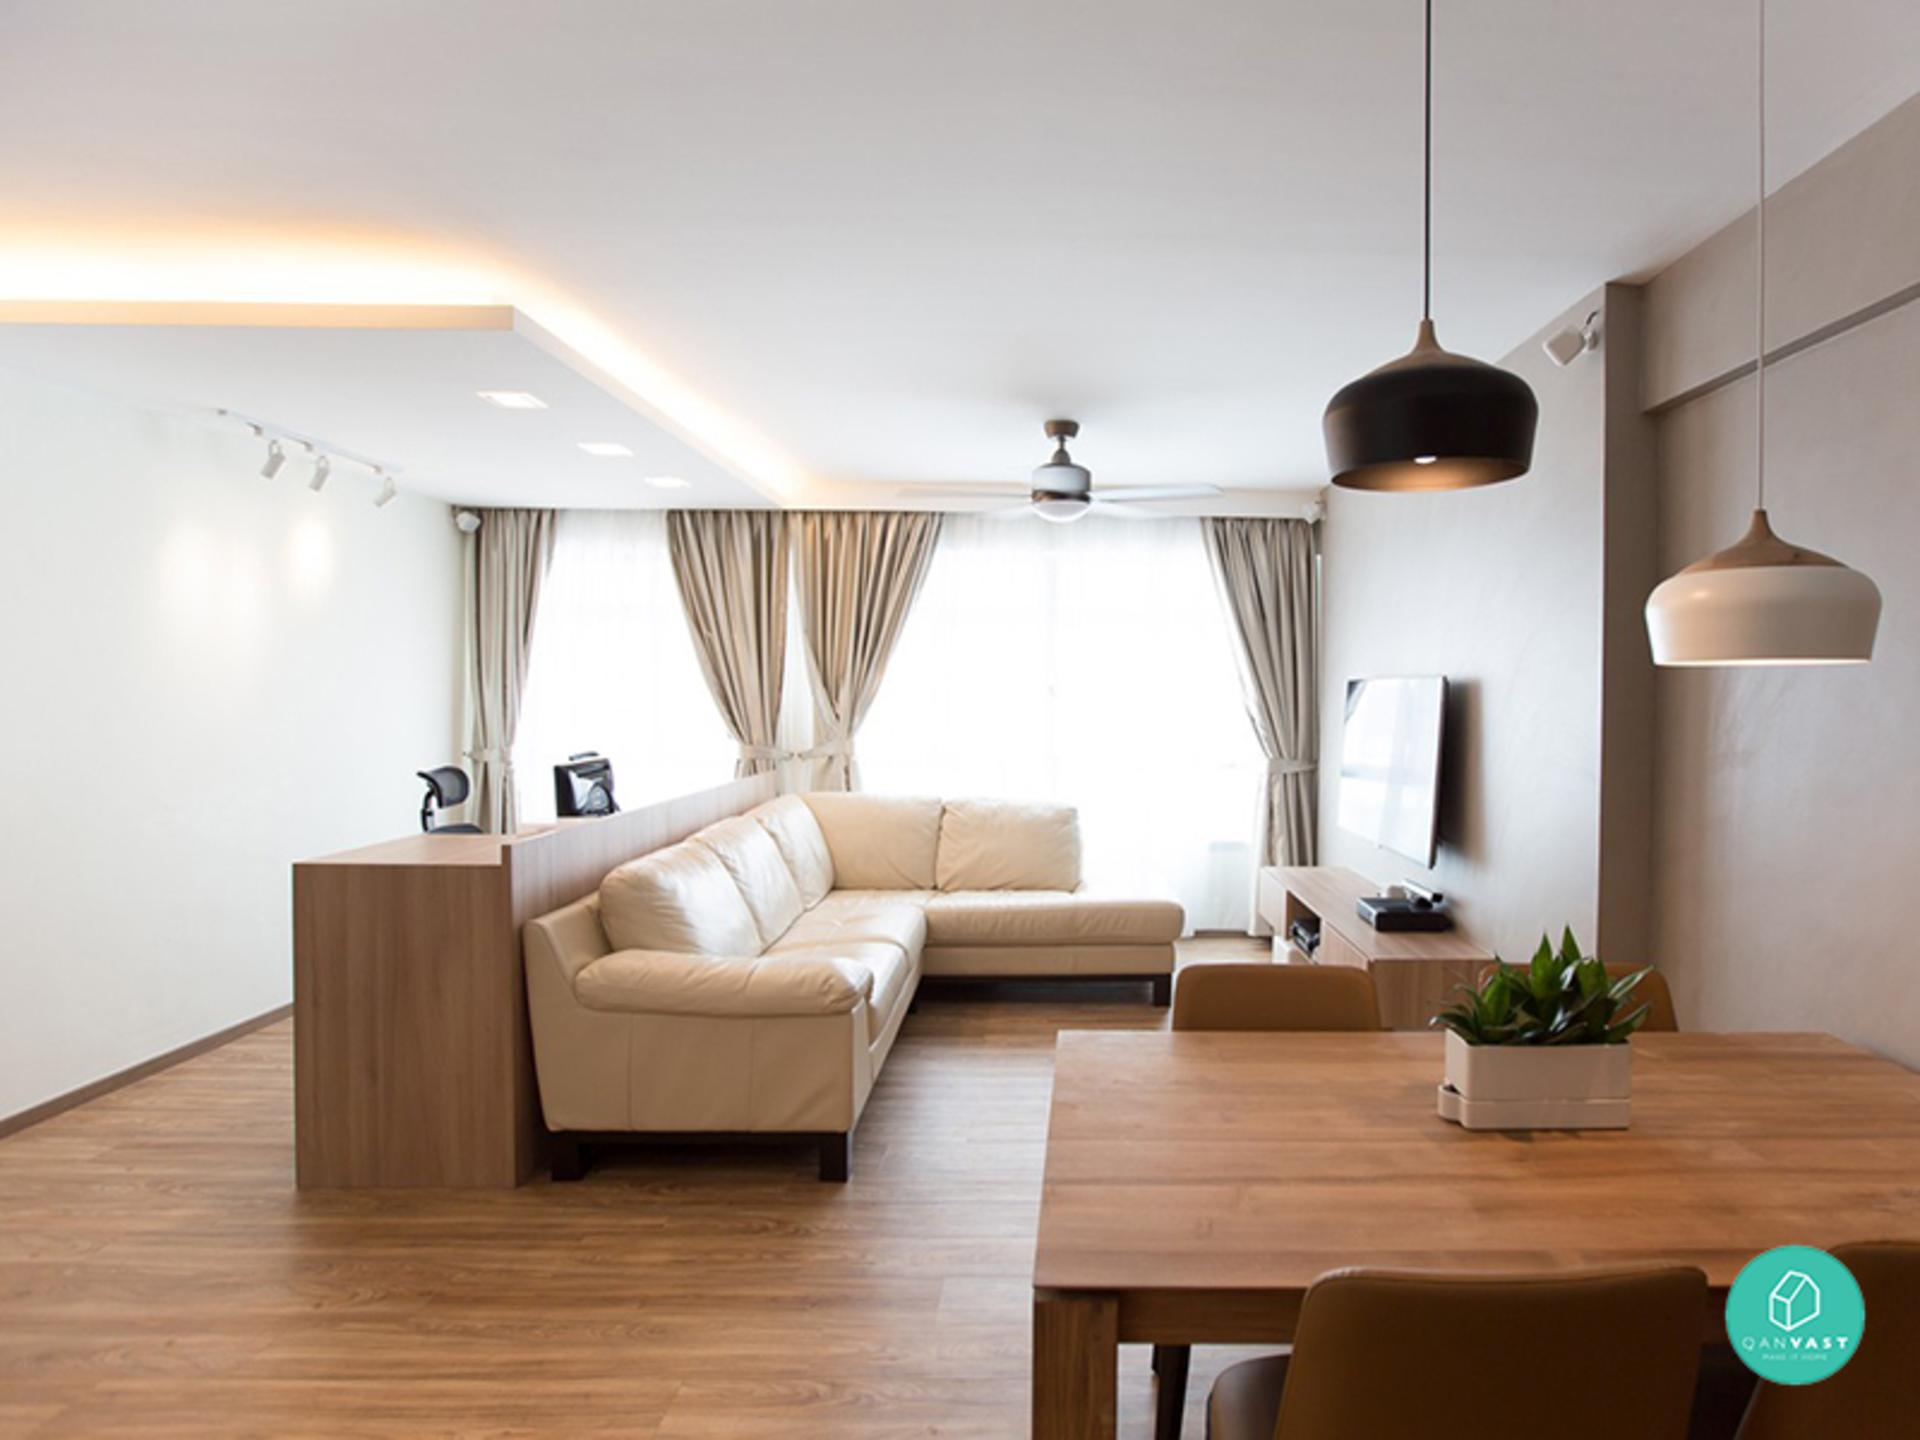 8 awesome bto interior designs that look good in any home for Interior design 5 room bto